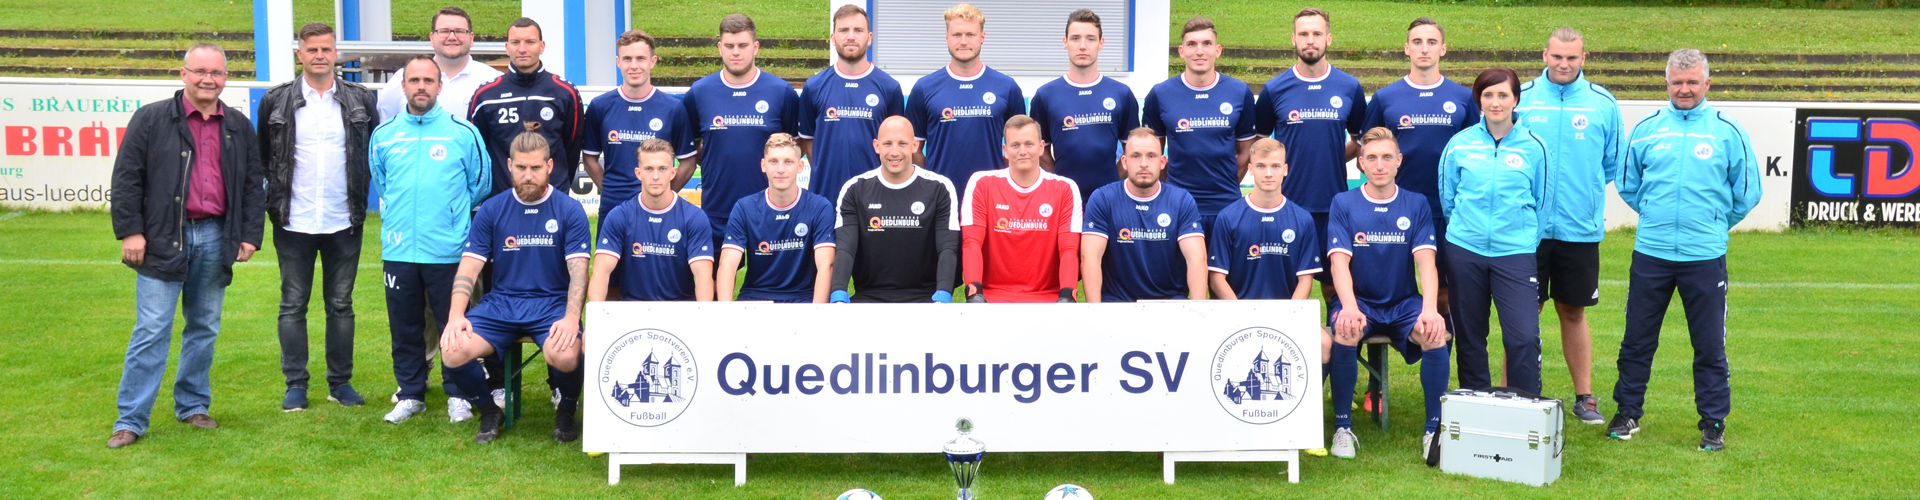 qsv-fussball-slider-13